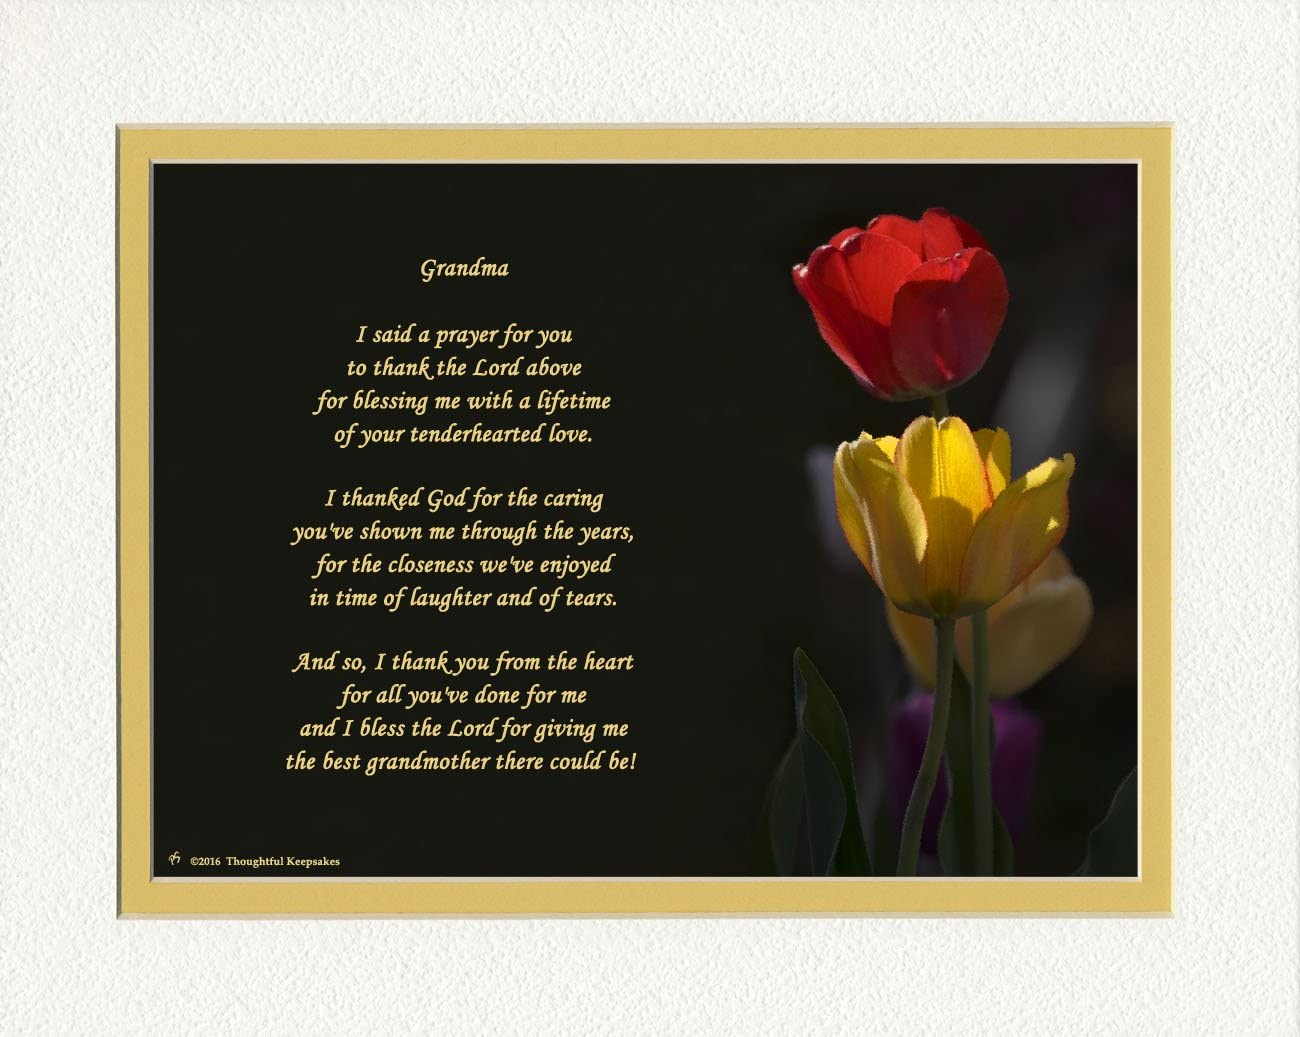 Grandma Gift with Thank You Prayer for Best Grandmother Poem 8x10 Double Matted Special Grandmother Gift for Christmas Red /& Yellow Tulips Photo Birthday Gift for Nana